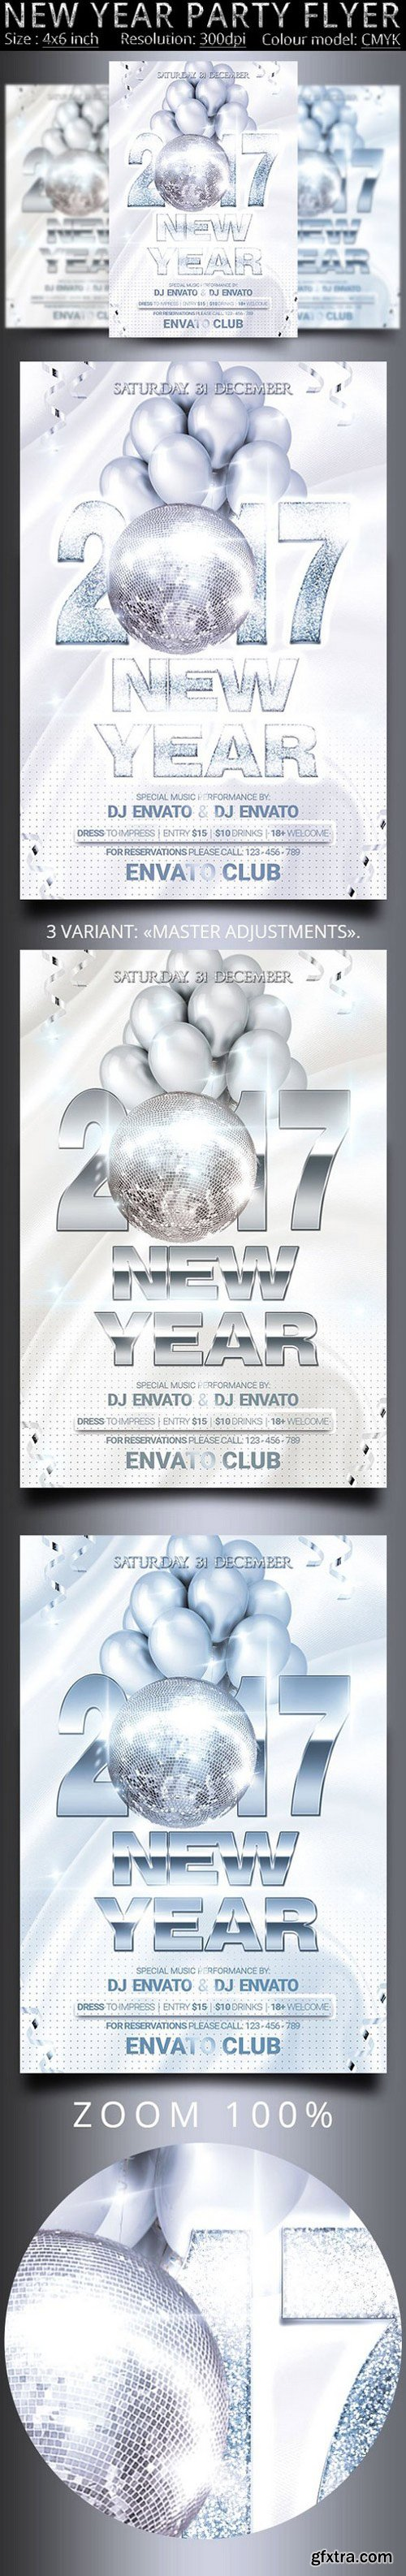 CM - New Year Party Flyer 1036577